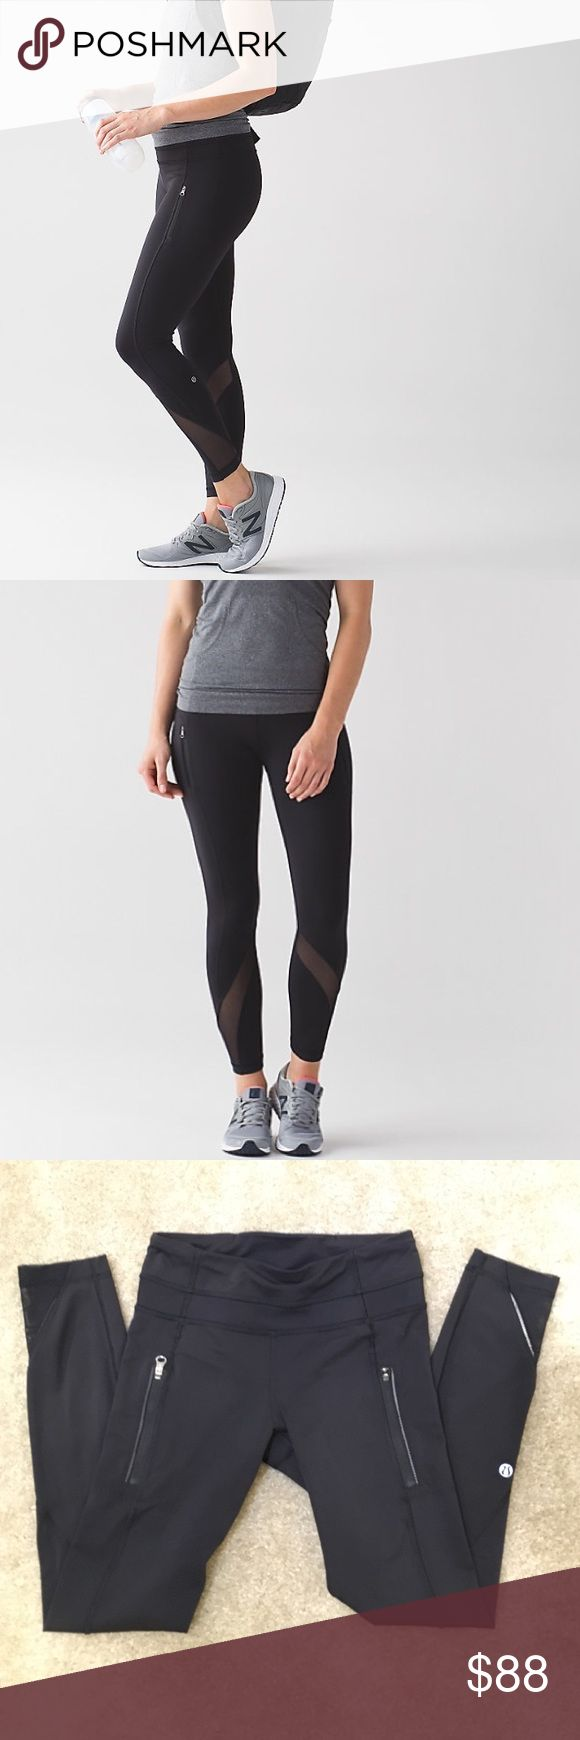 LULULEMON LEGGINGS Firm on price ✨ 🚫No trades  Fast shipping 💌 BUNDLE✅ 10% off 2+ items LIKE • COMMENT • SHARE • SHOP 🛍 lululemon athletica Pants Leggings